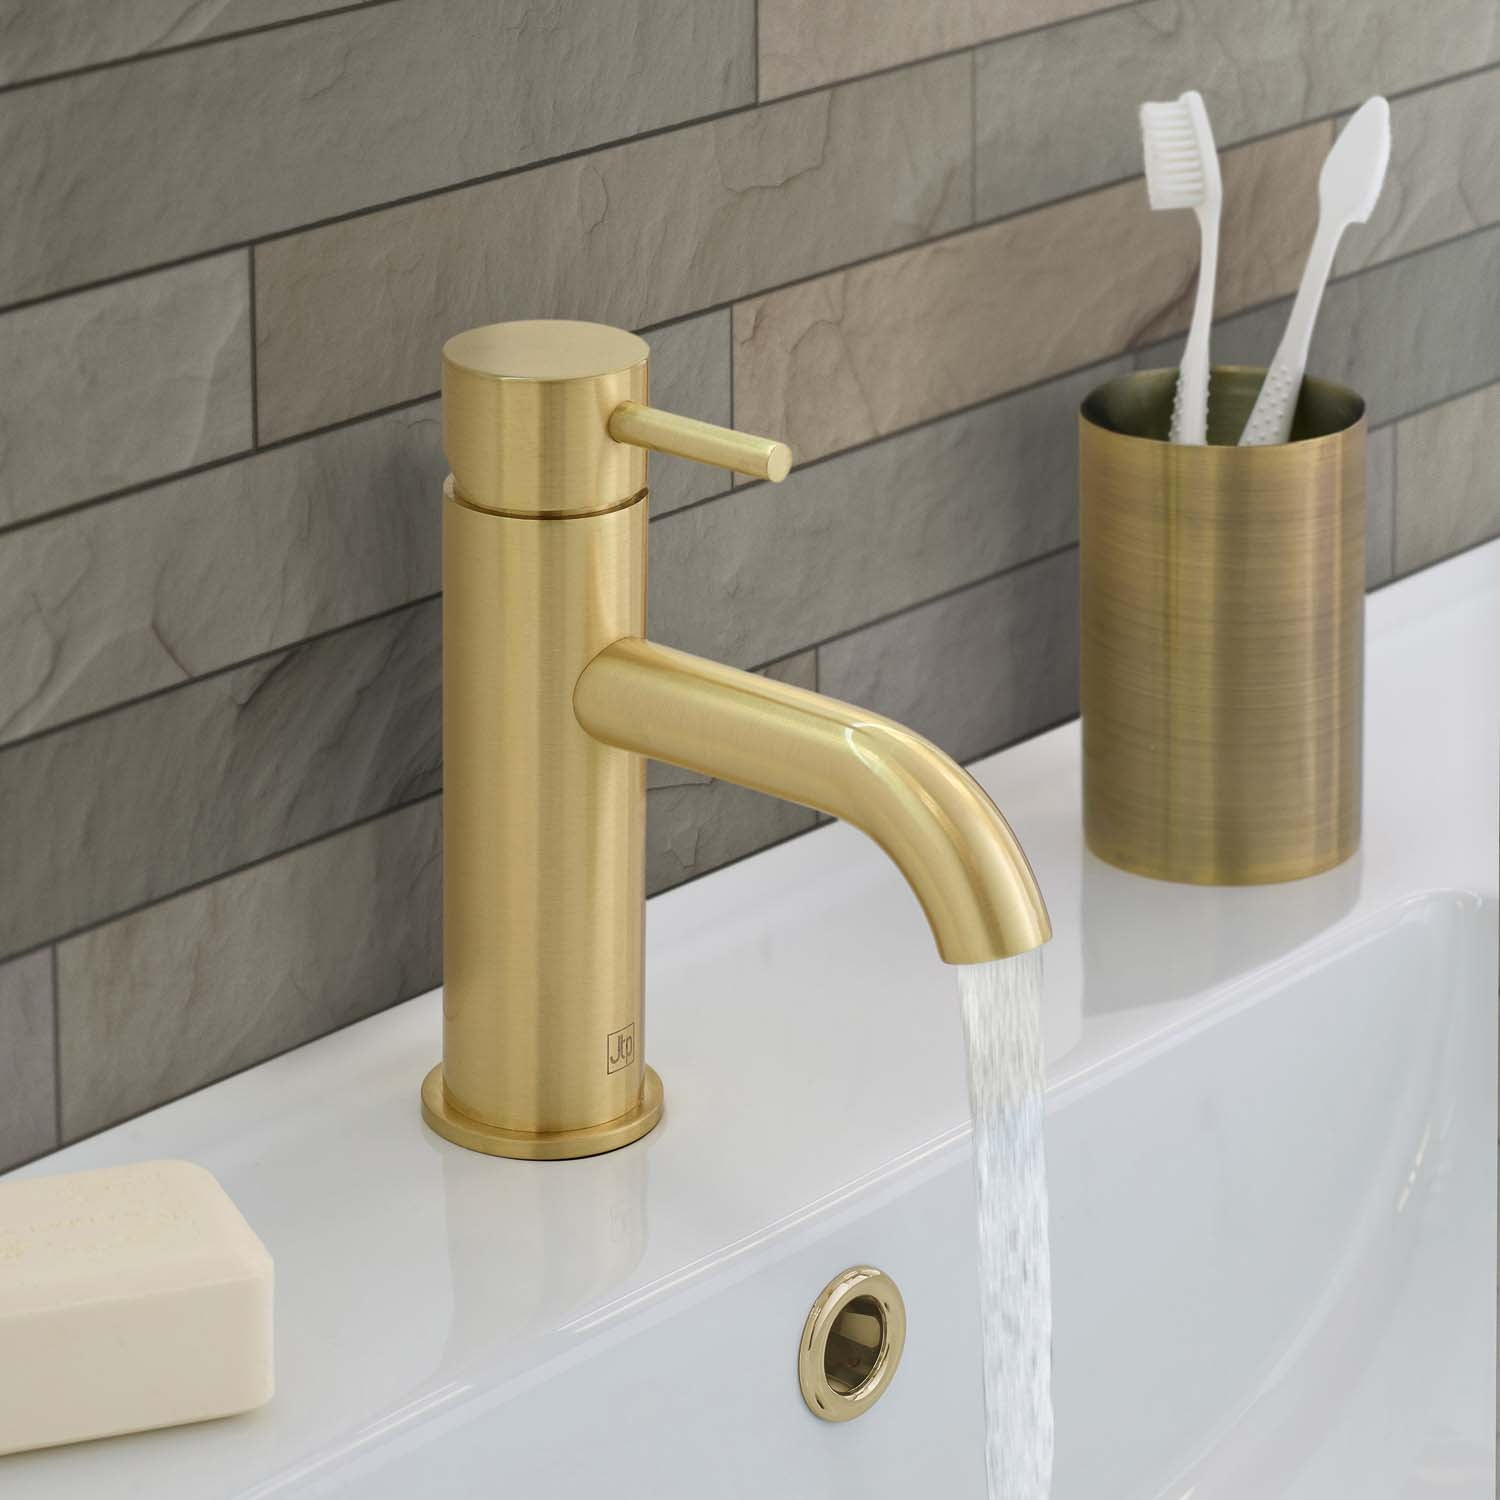 One hole deck mounted Libero Lever Basin Tap with a brushed brass finish lifestyle image